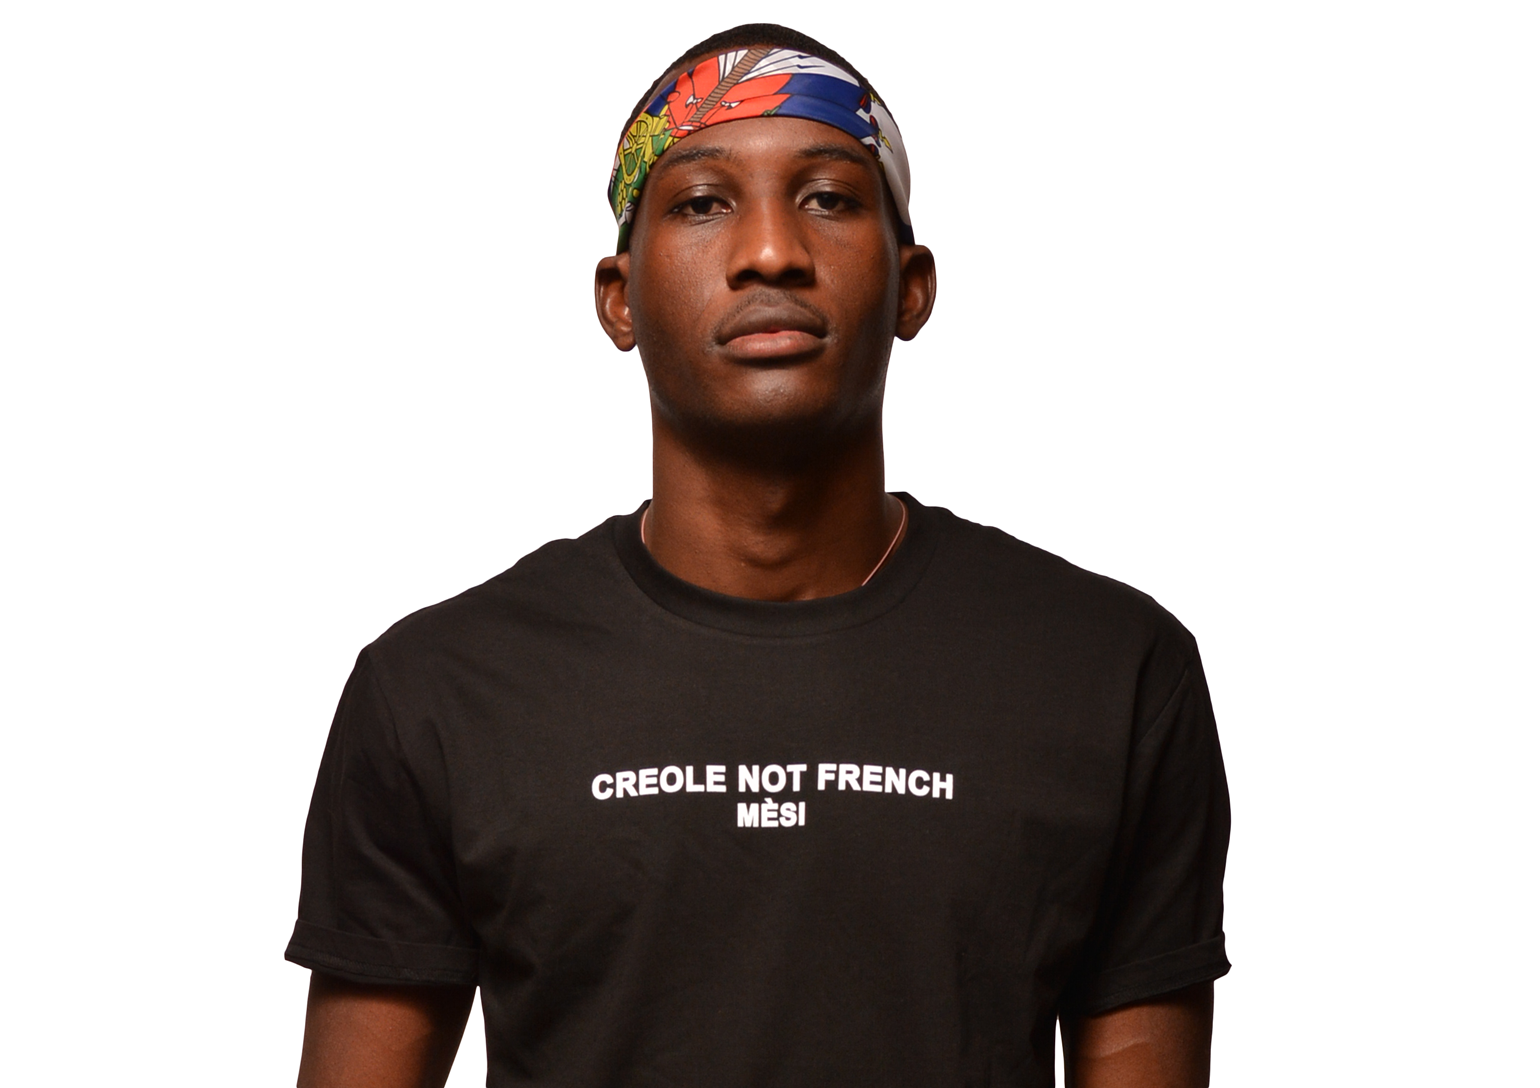 Creole not French Mesi - Black T-shirt | FREKAN, Inc